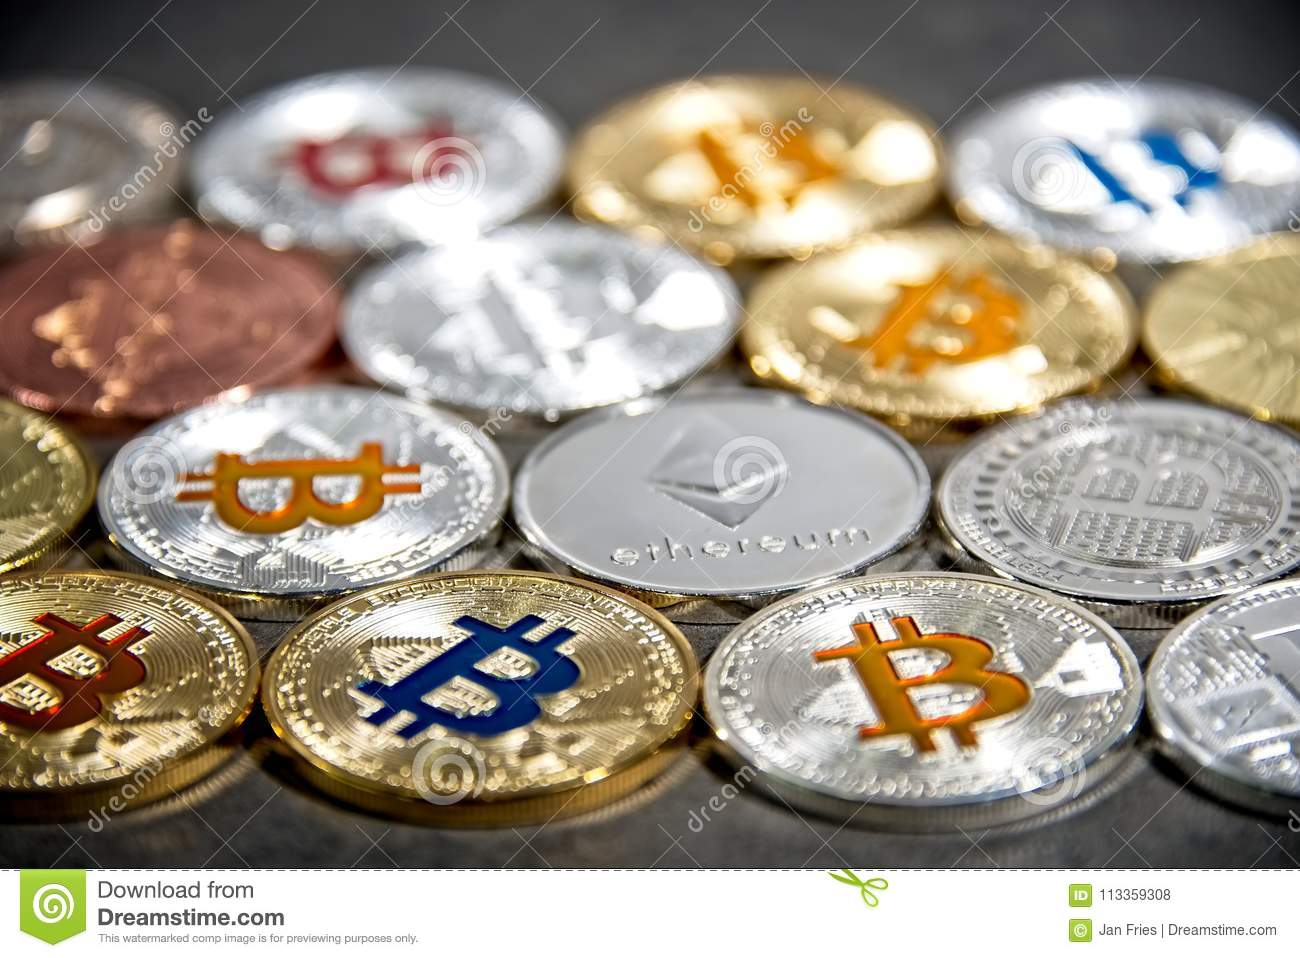 BTC and ETH, Bitcoin and Ethereum coins